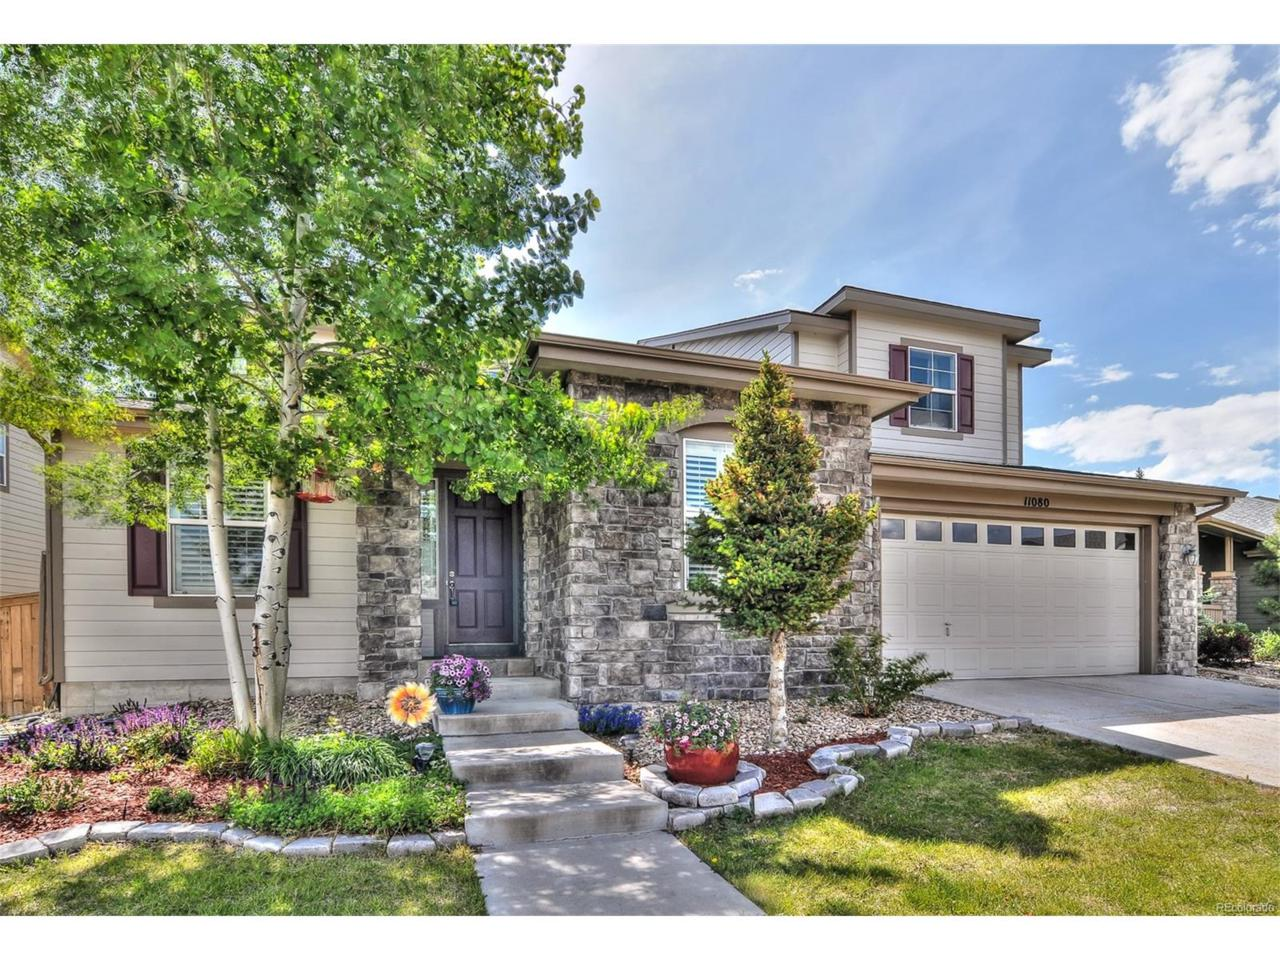 11080 Glengate Circle, Highlands Ranch, CO 80130 (MLS #6278585) :: 8z Real Estate